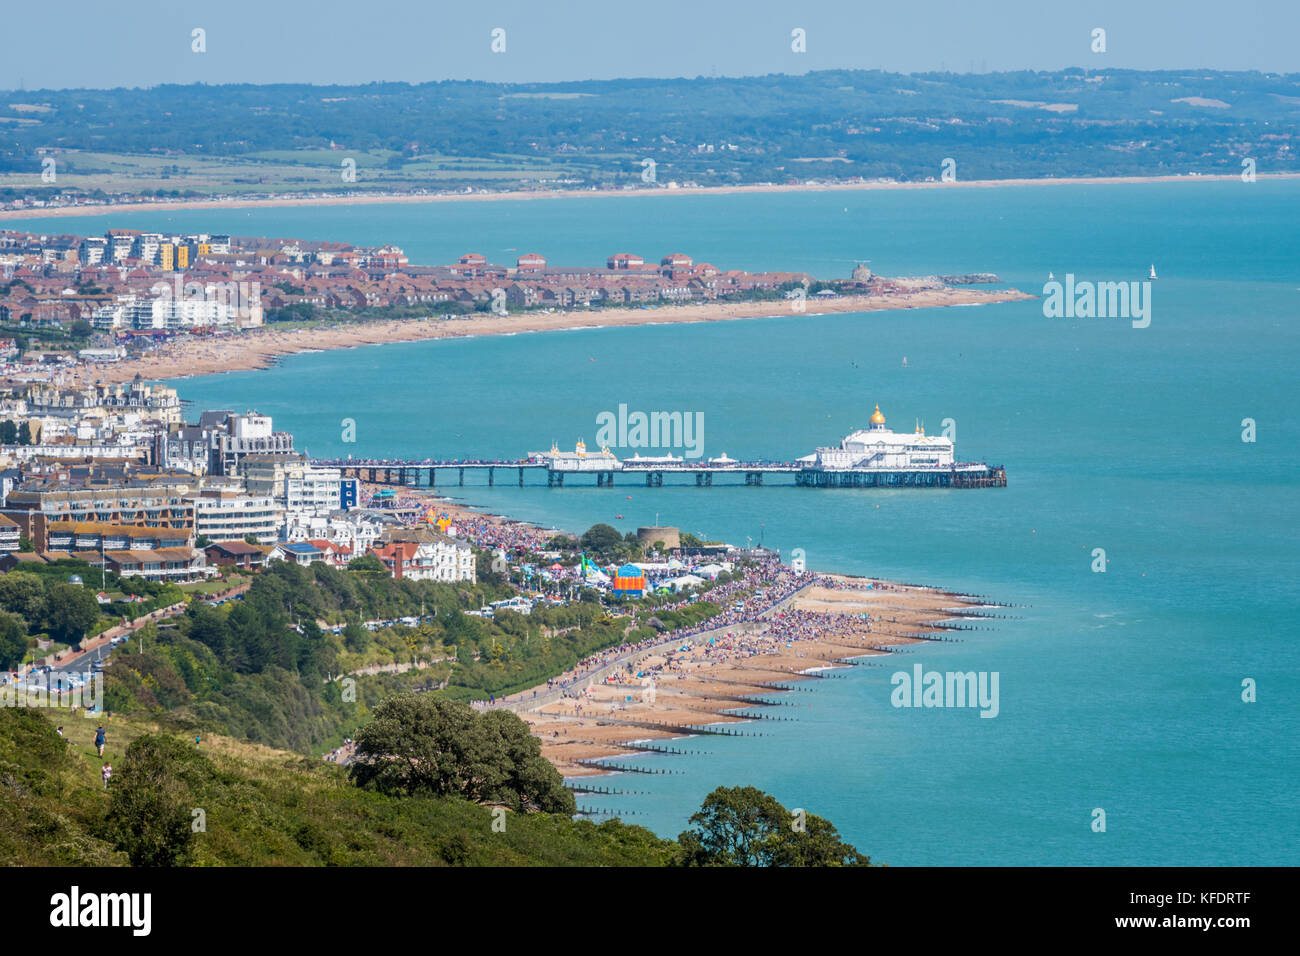 Aerial view of Eastbourne seafront, promenade, pier and English Channel from Beachy Head cliff top footpath Stock Photo